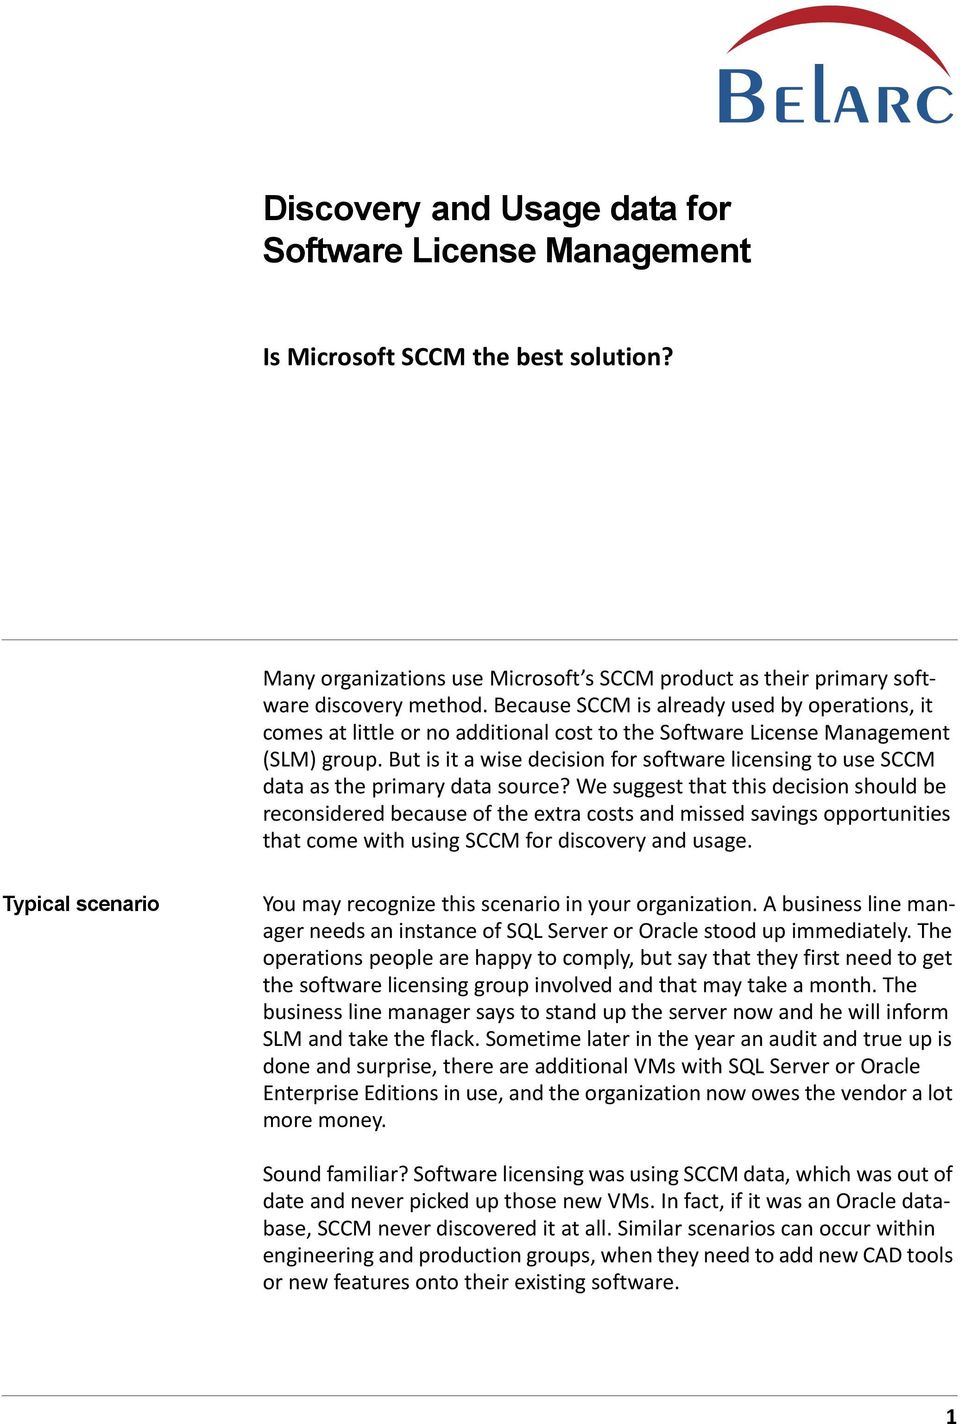 But is it a wise decision for software licensing to use SCCM data as the primary data source?